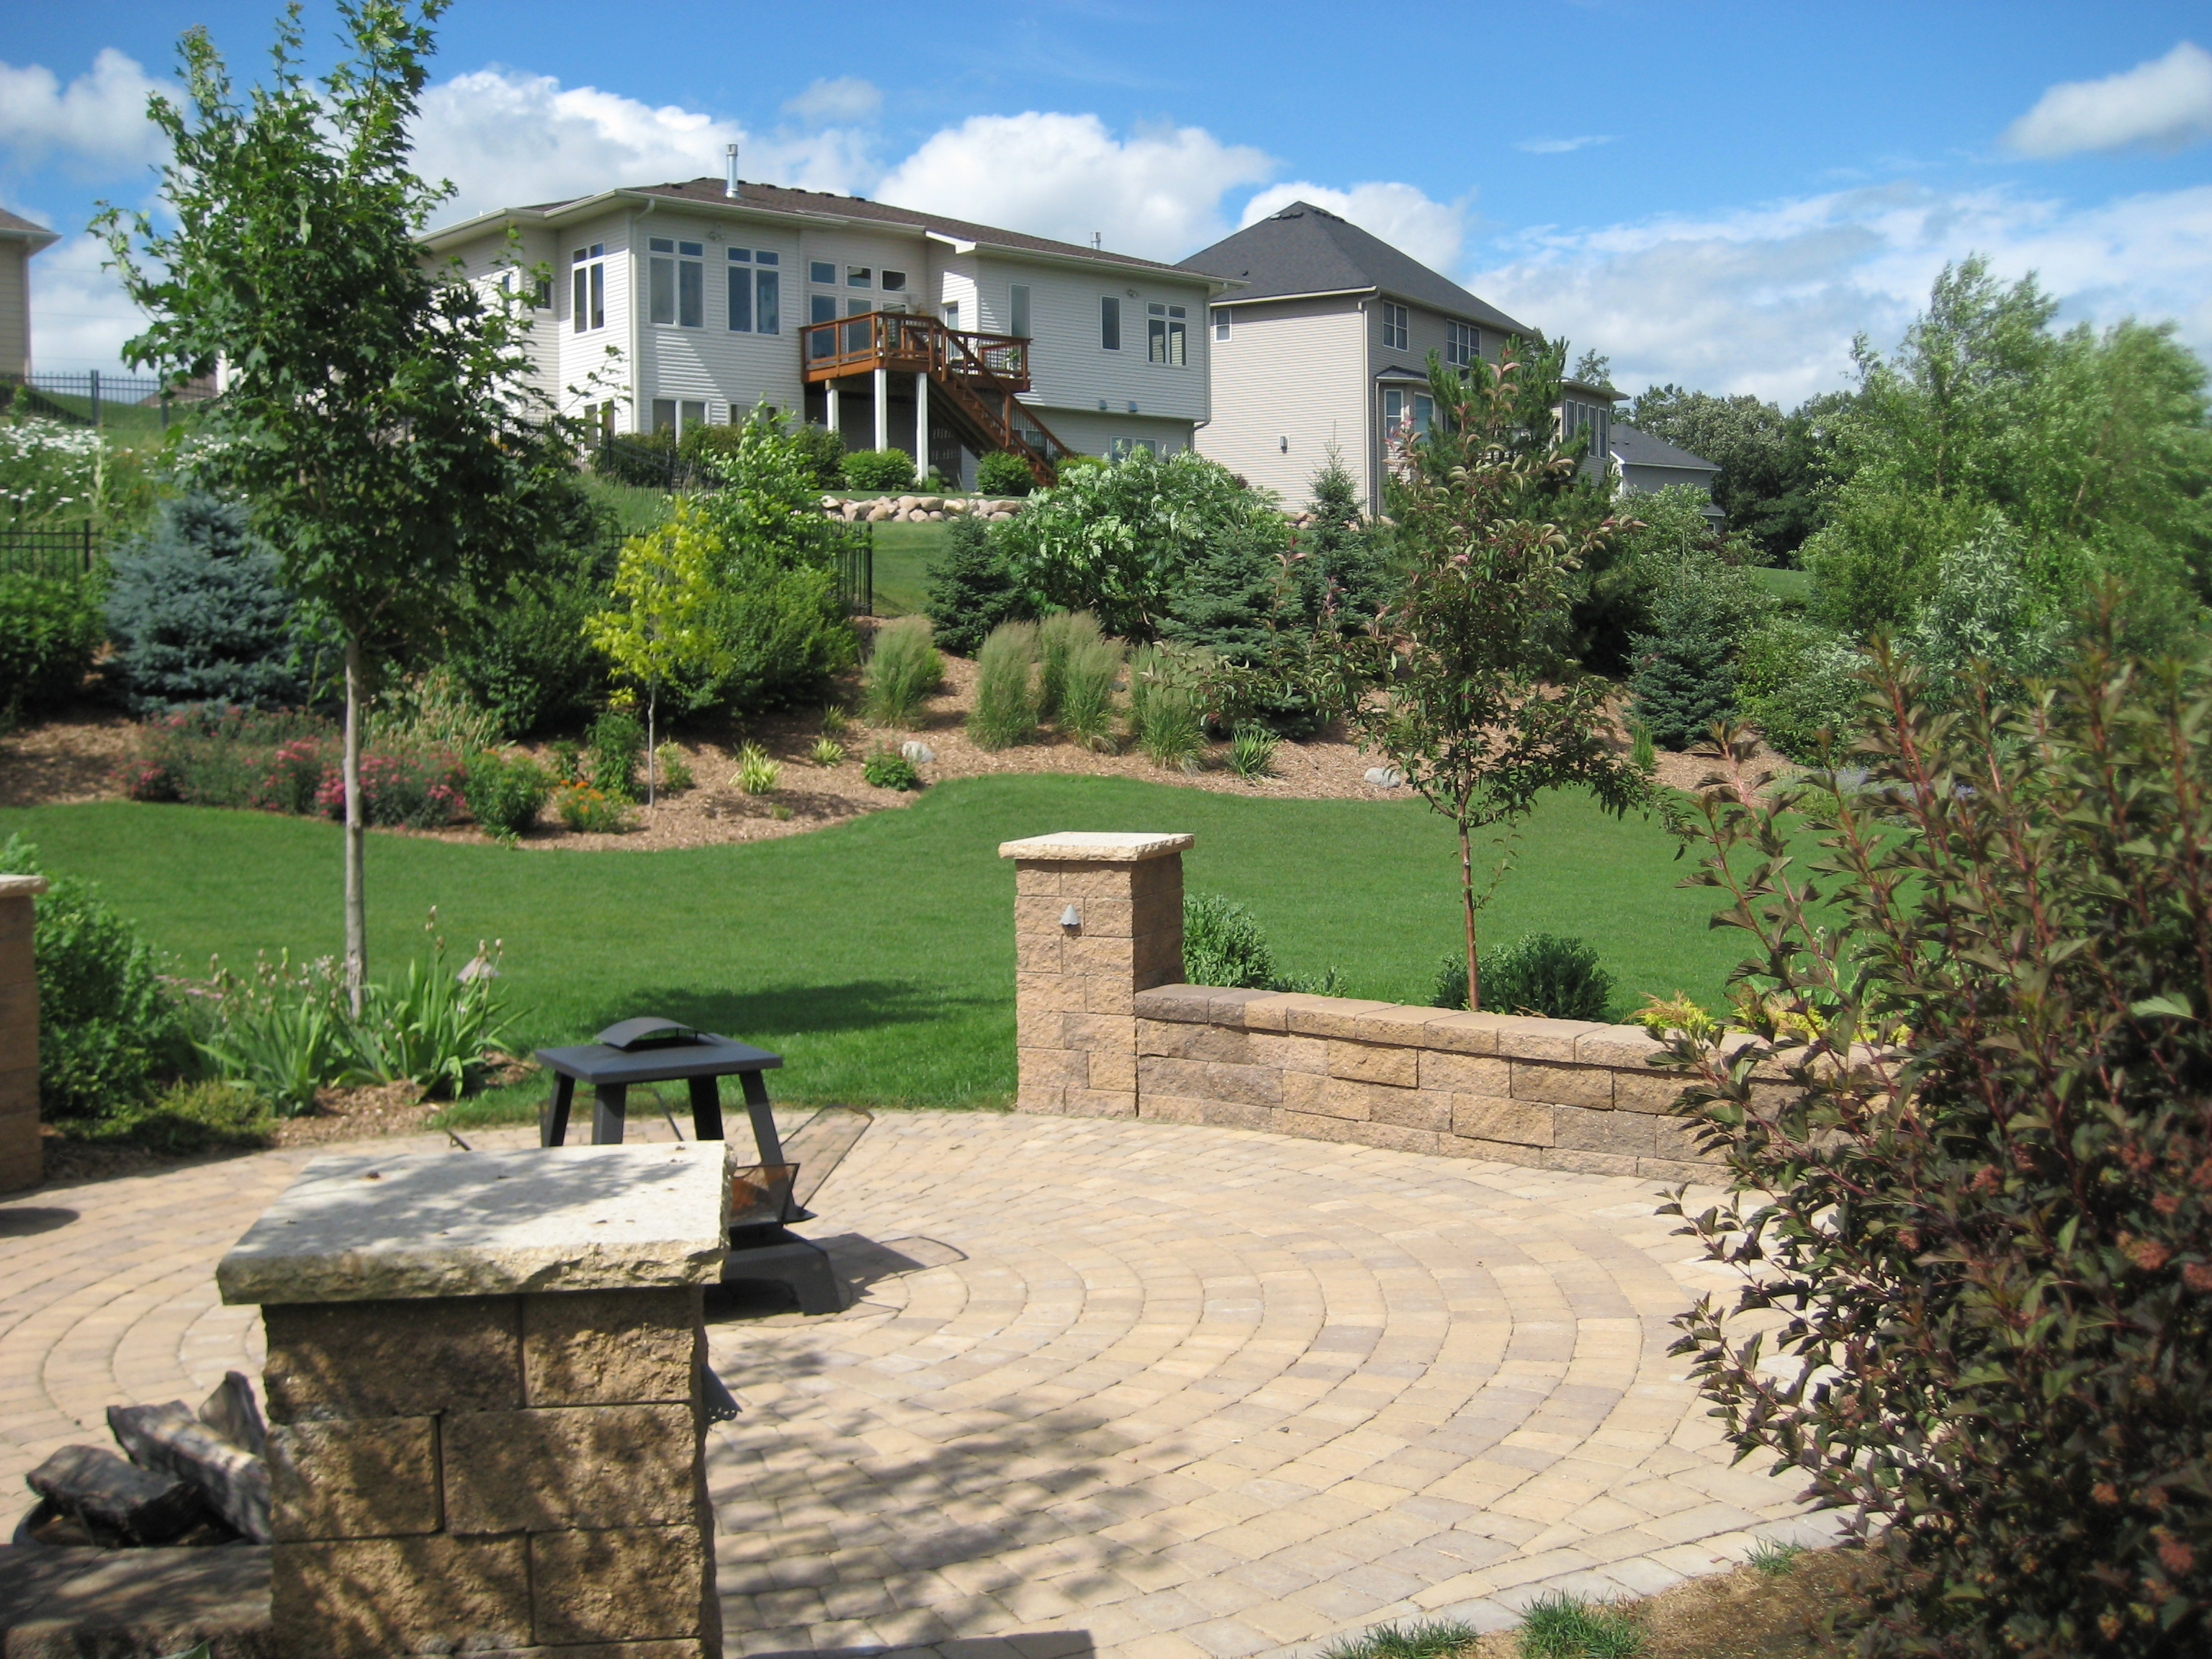 Ecoscapes Sustainable Landscaping Landscape Design Build Contractor Serving Minneapolis St Paul Twin Cities Metro